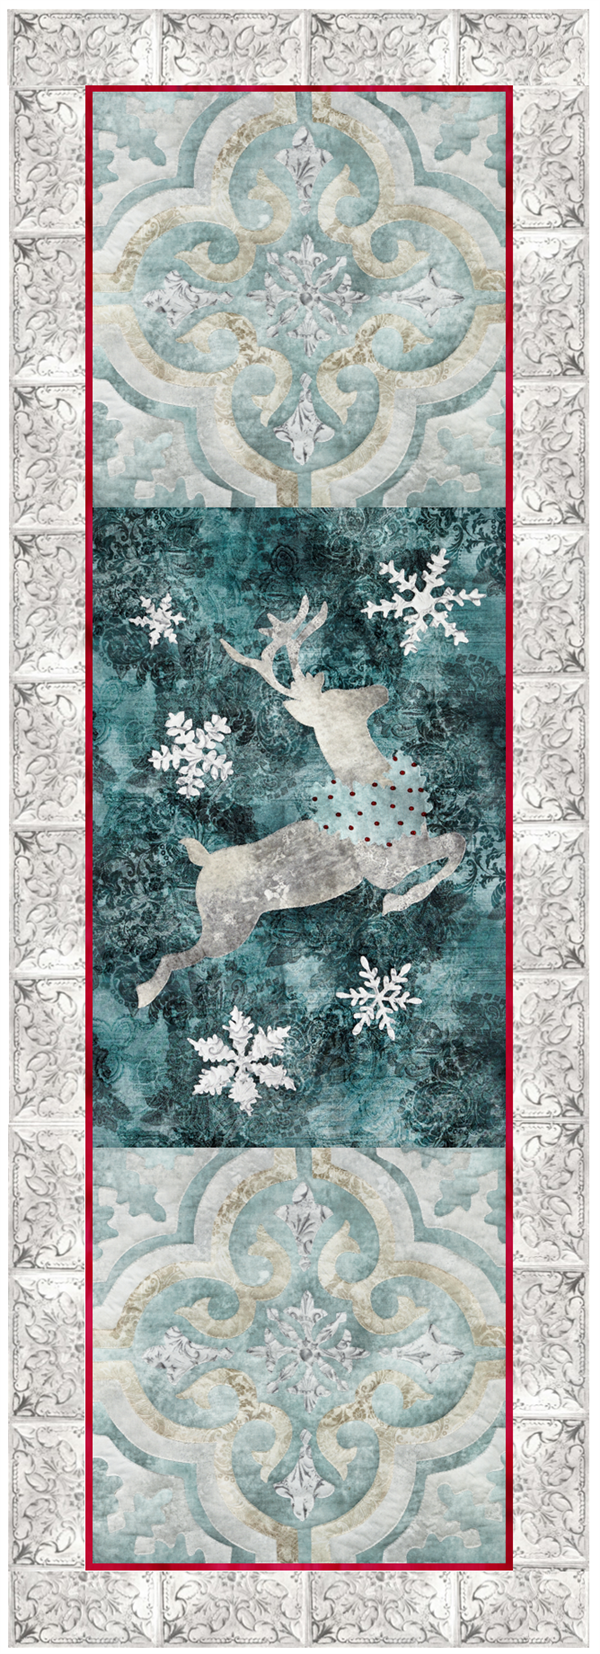 laser cut fabric kits for Joyeux Noel Reindeer Left-side 3-block group quilt block